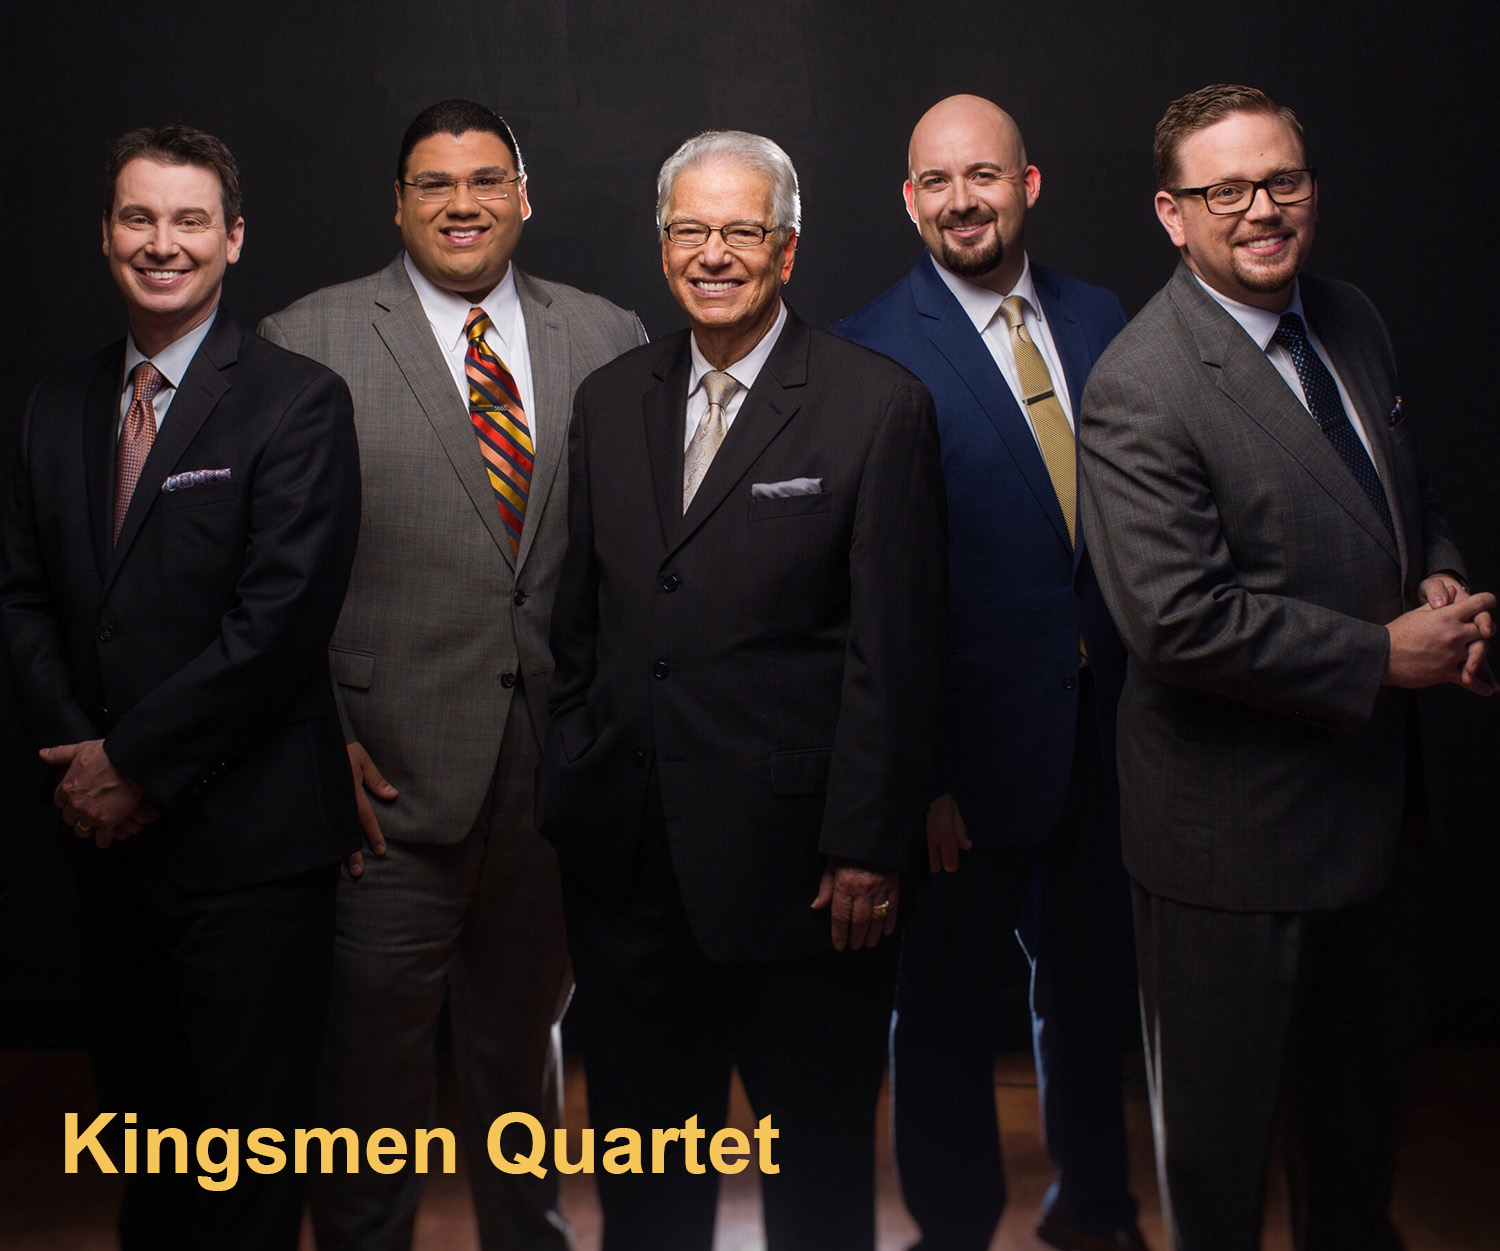 Kingsmen Quartet